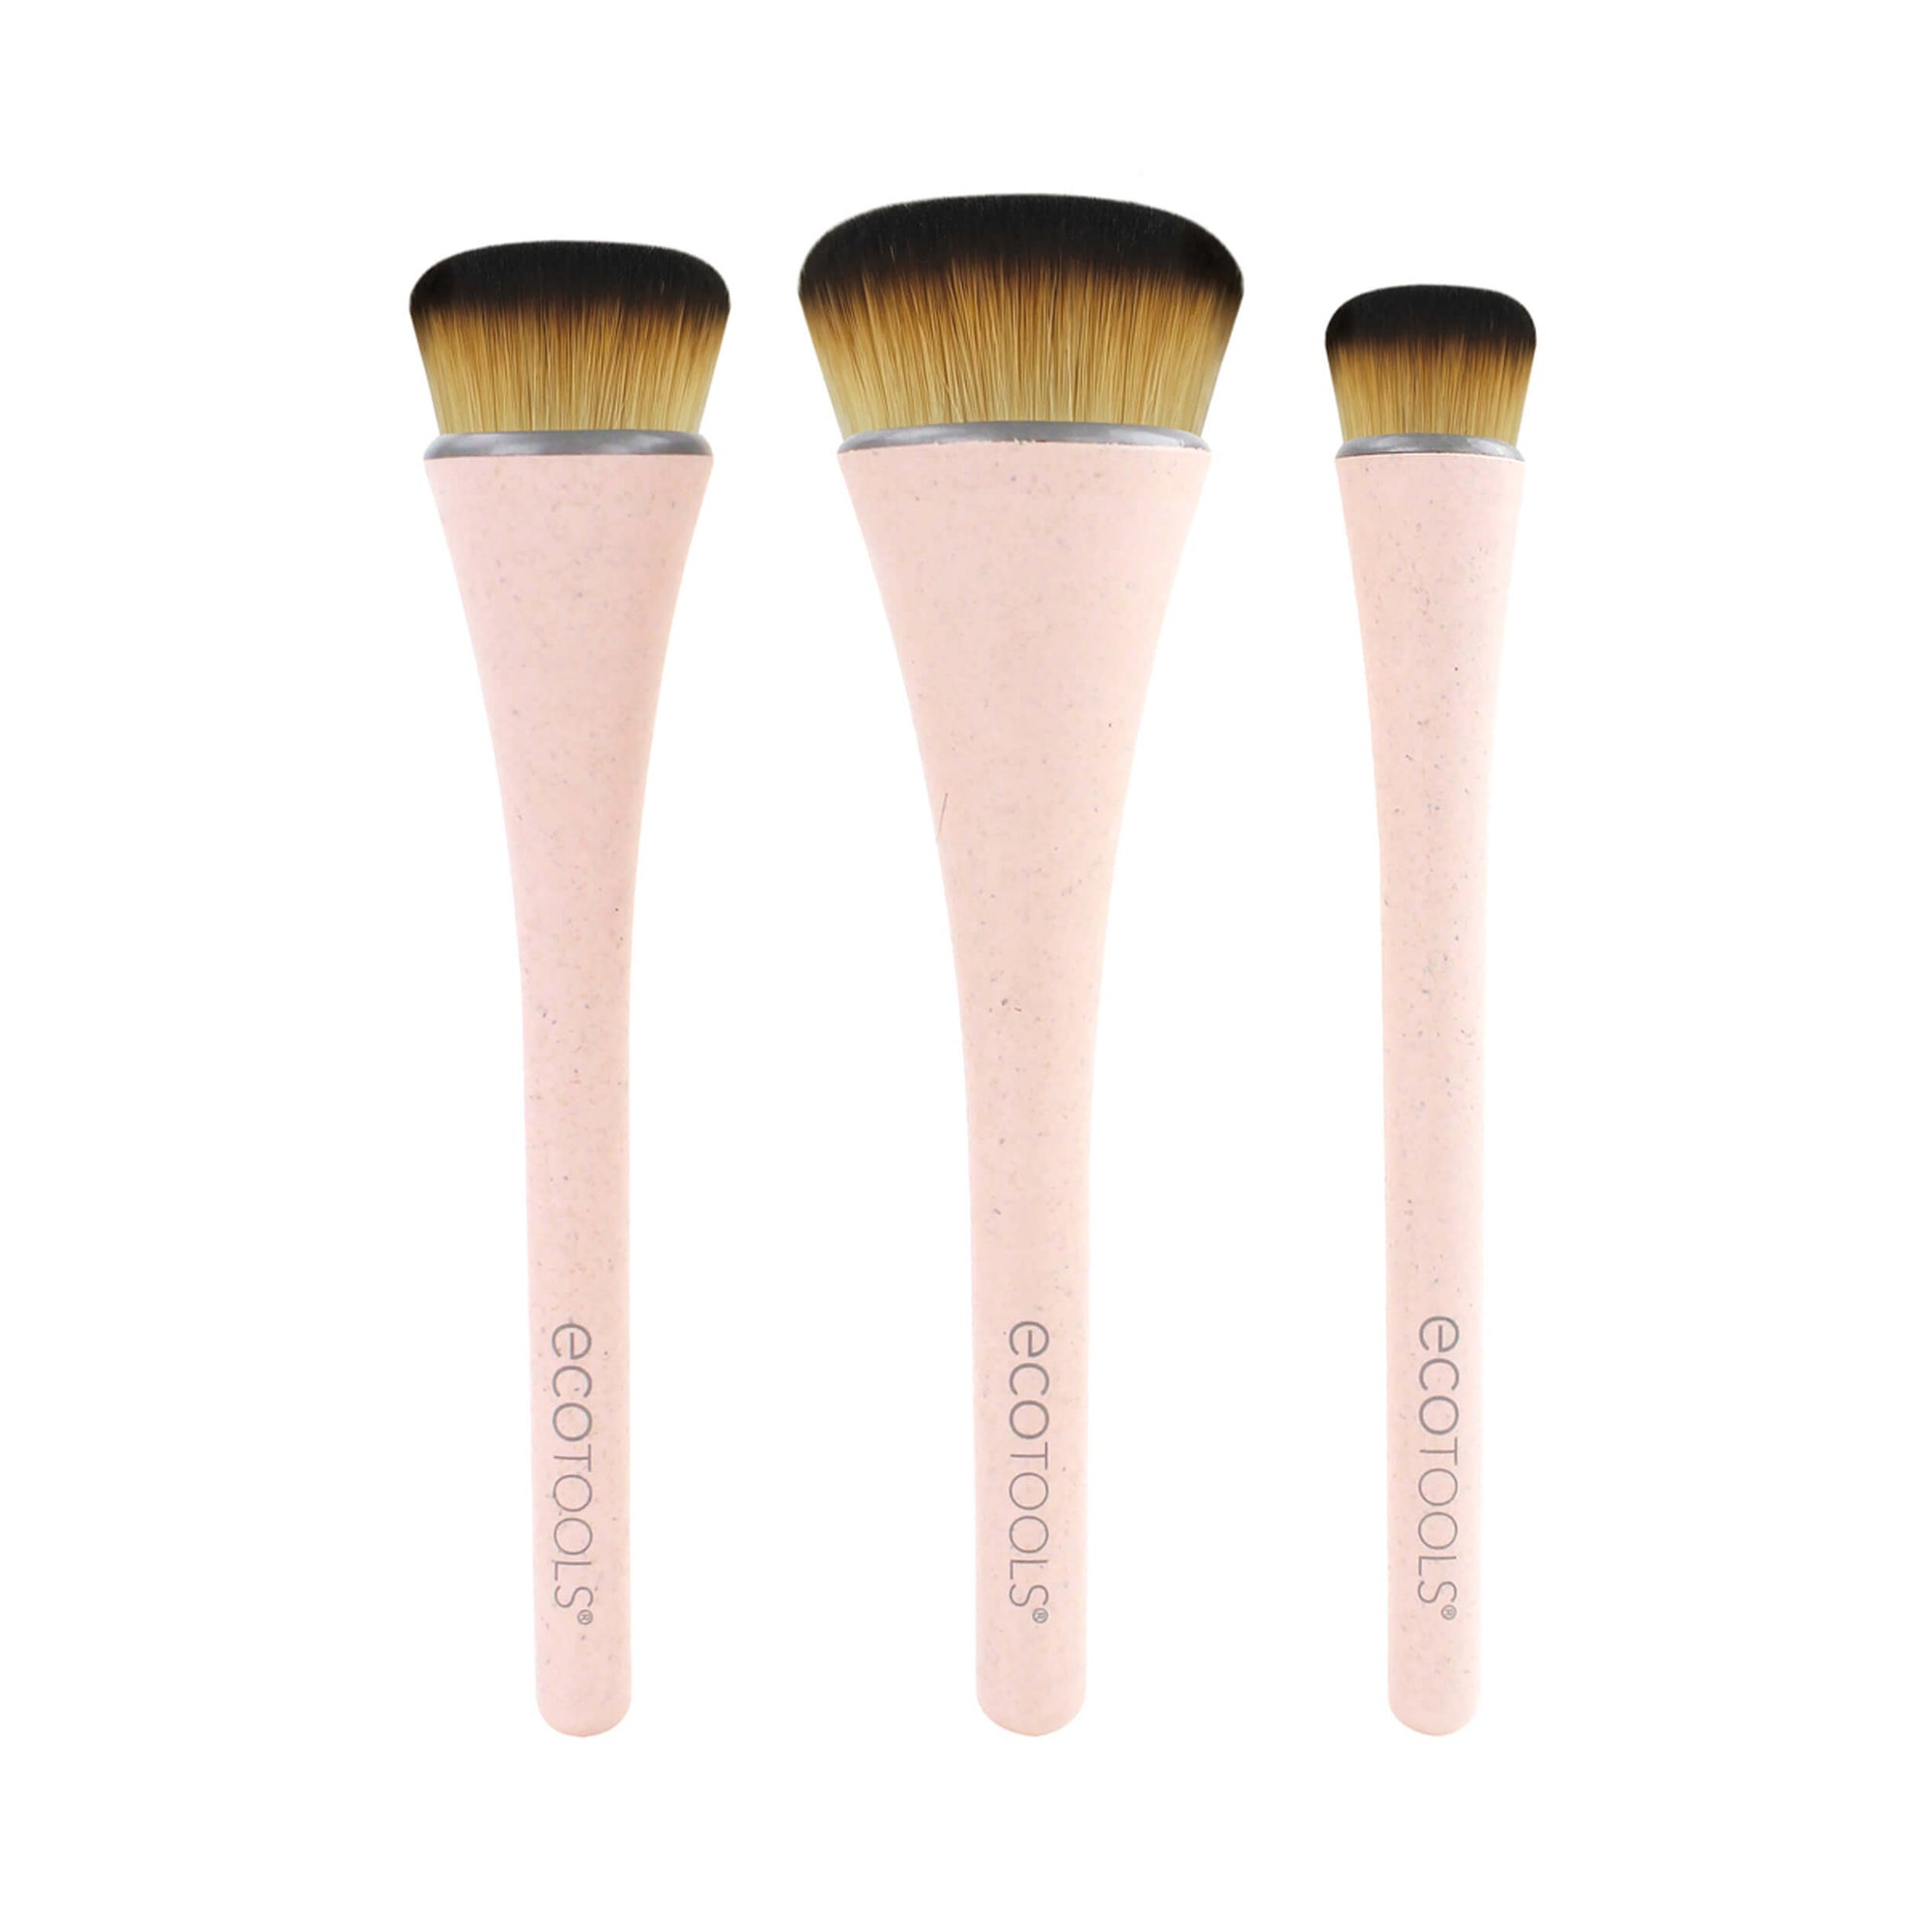 EcoTools 360 Ultimate Blend Brush Set